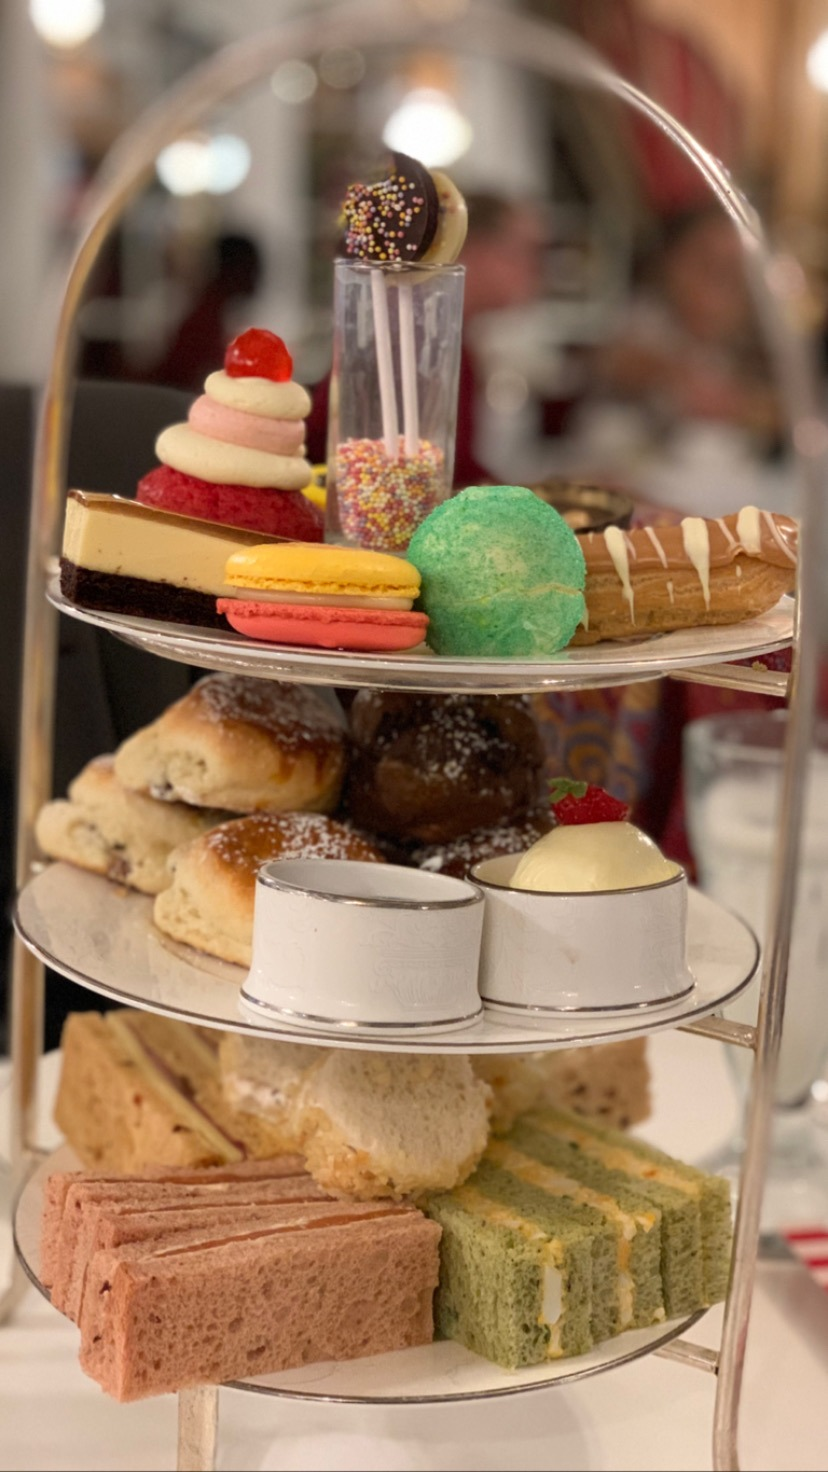 afternoon tea at The Chesterfield Mayfair Hotel